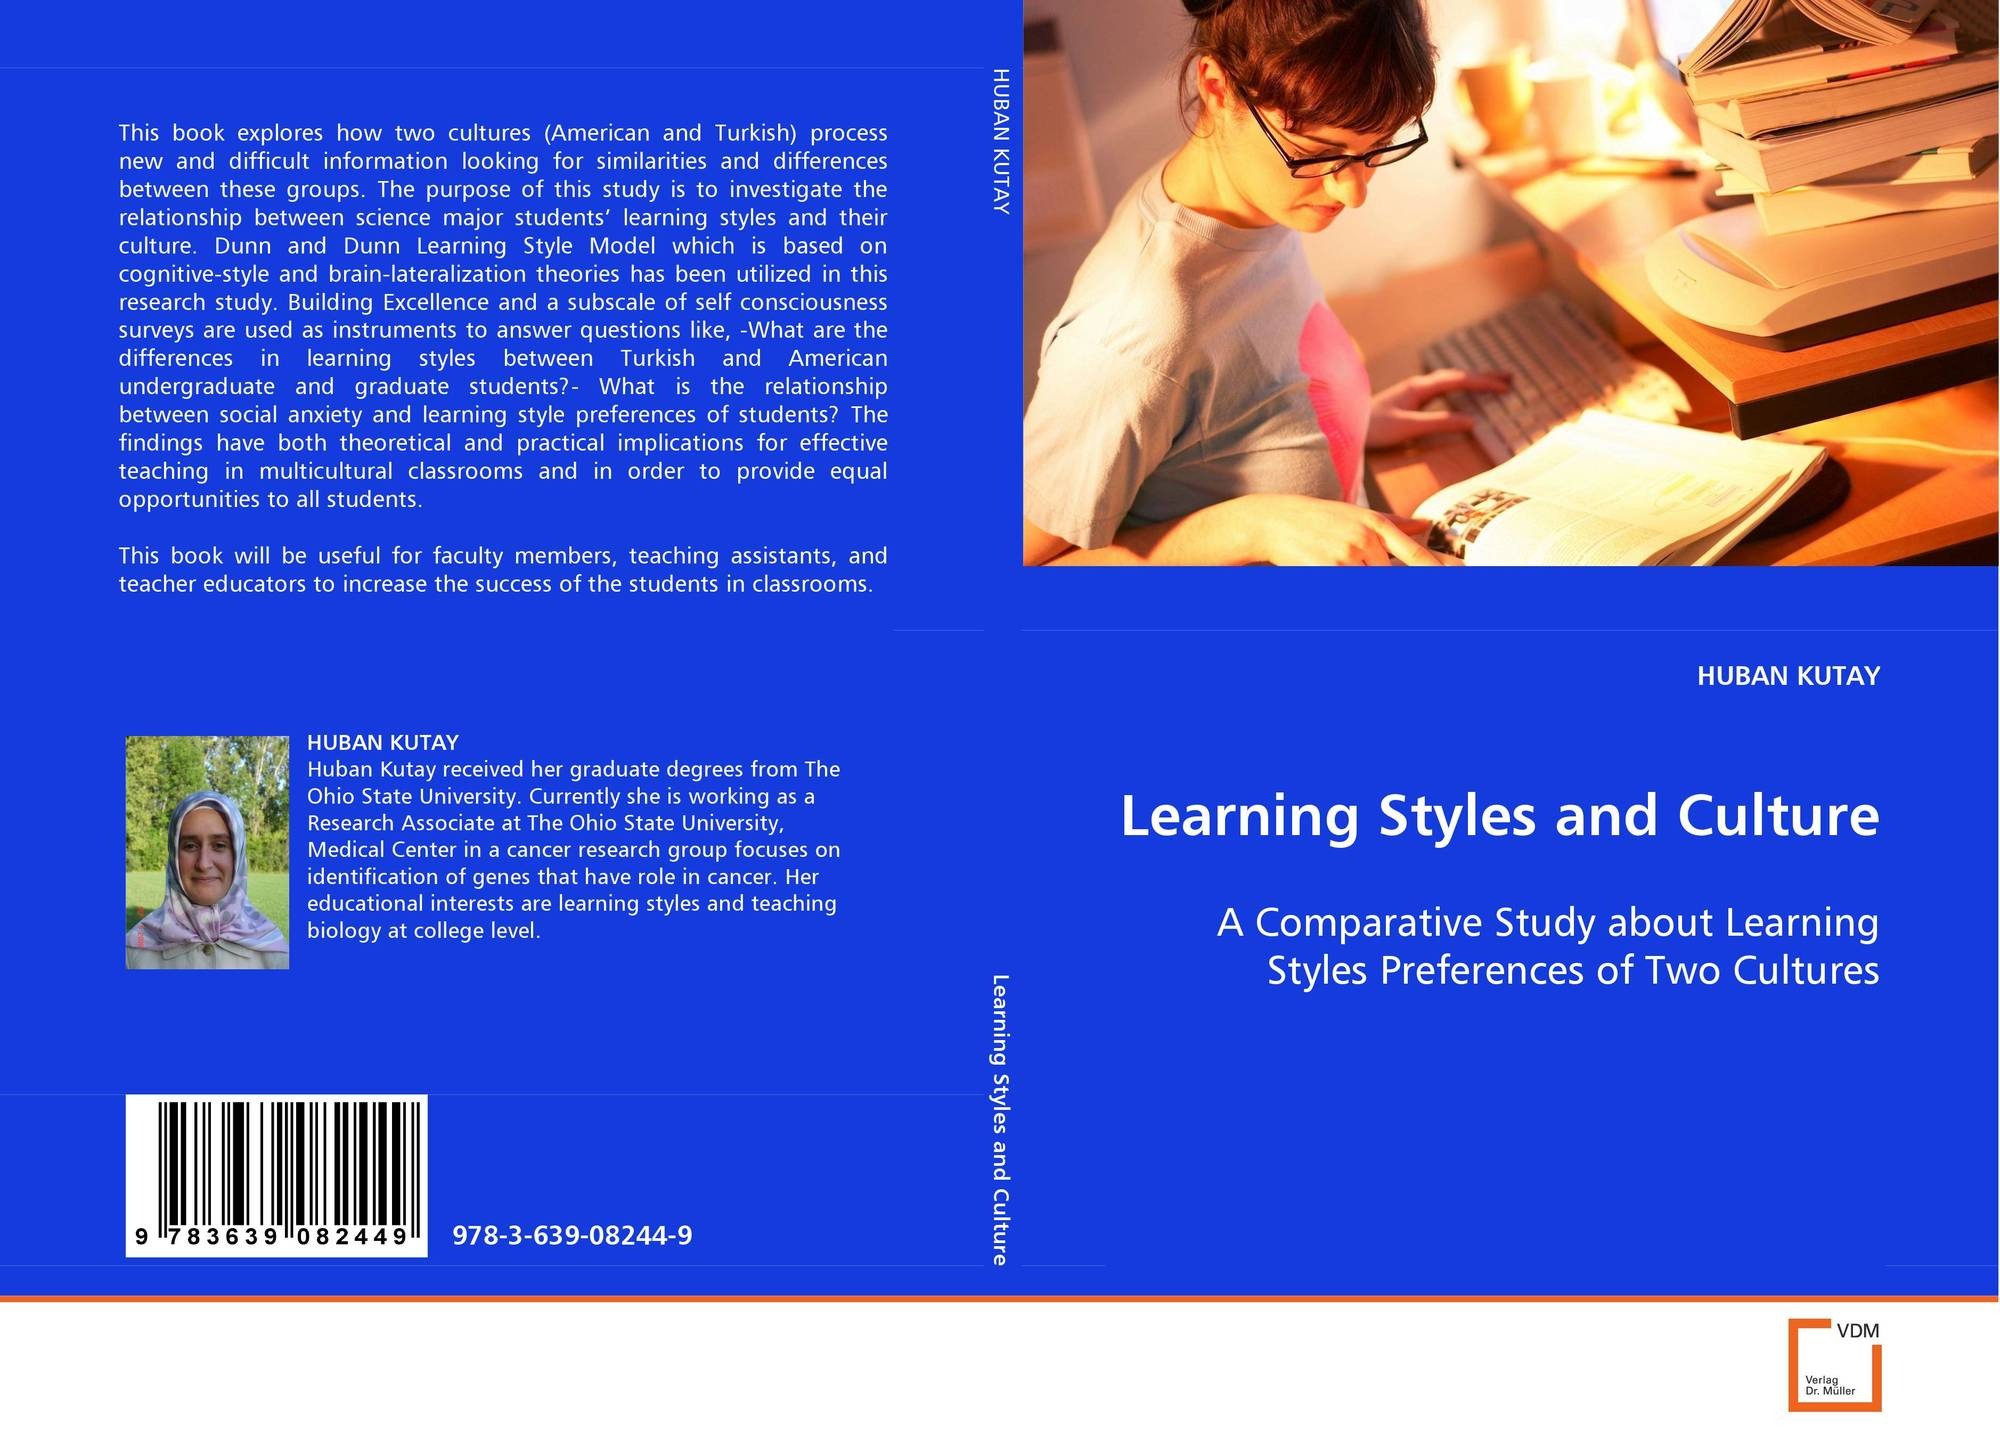 a comparison of teacher centered and student centered styles of learning